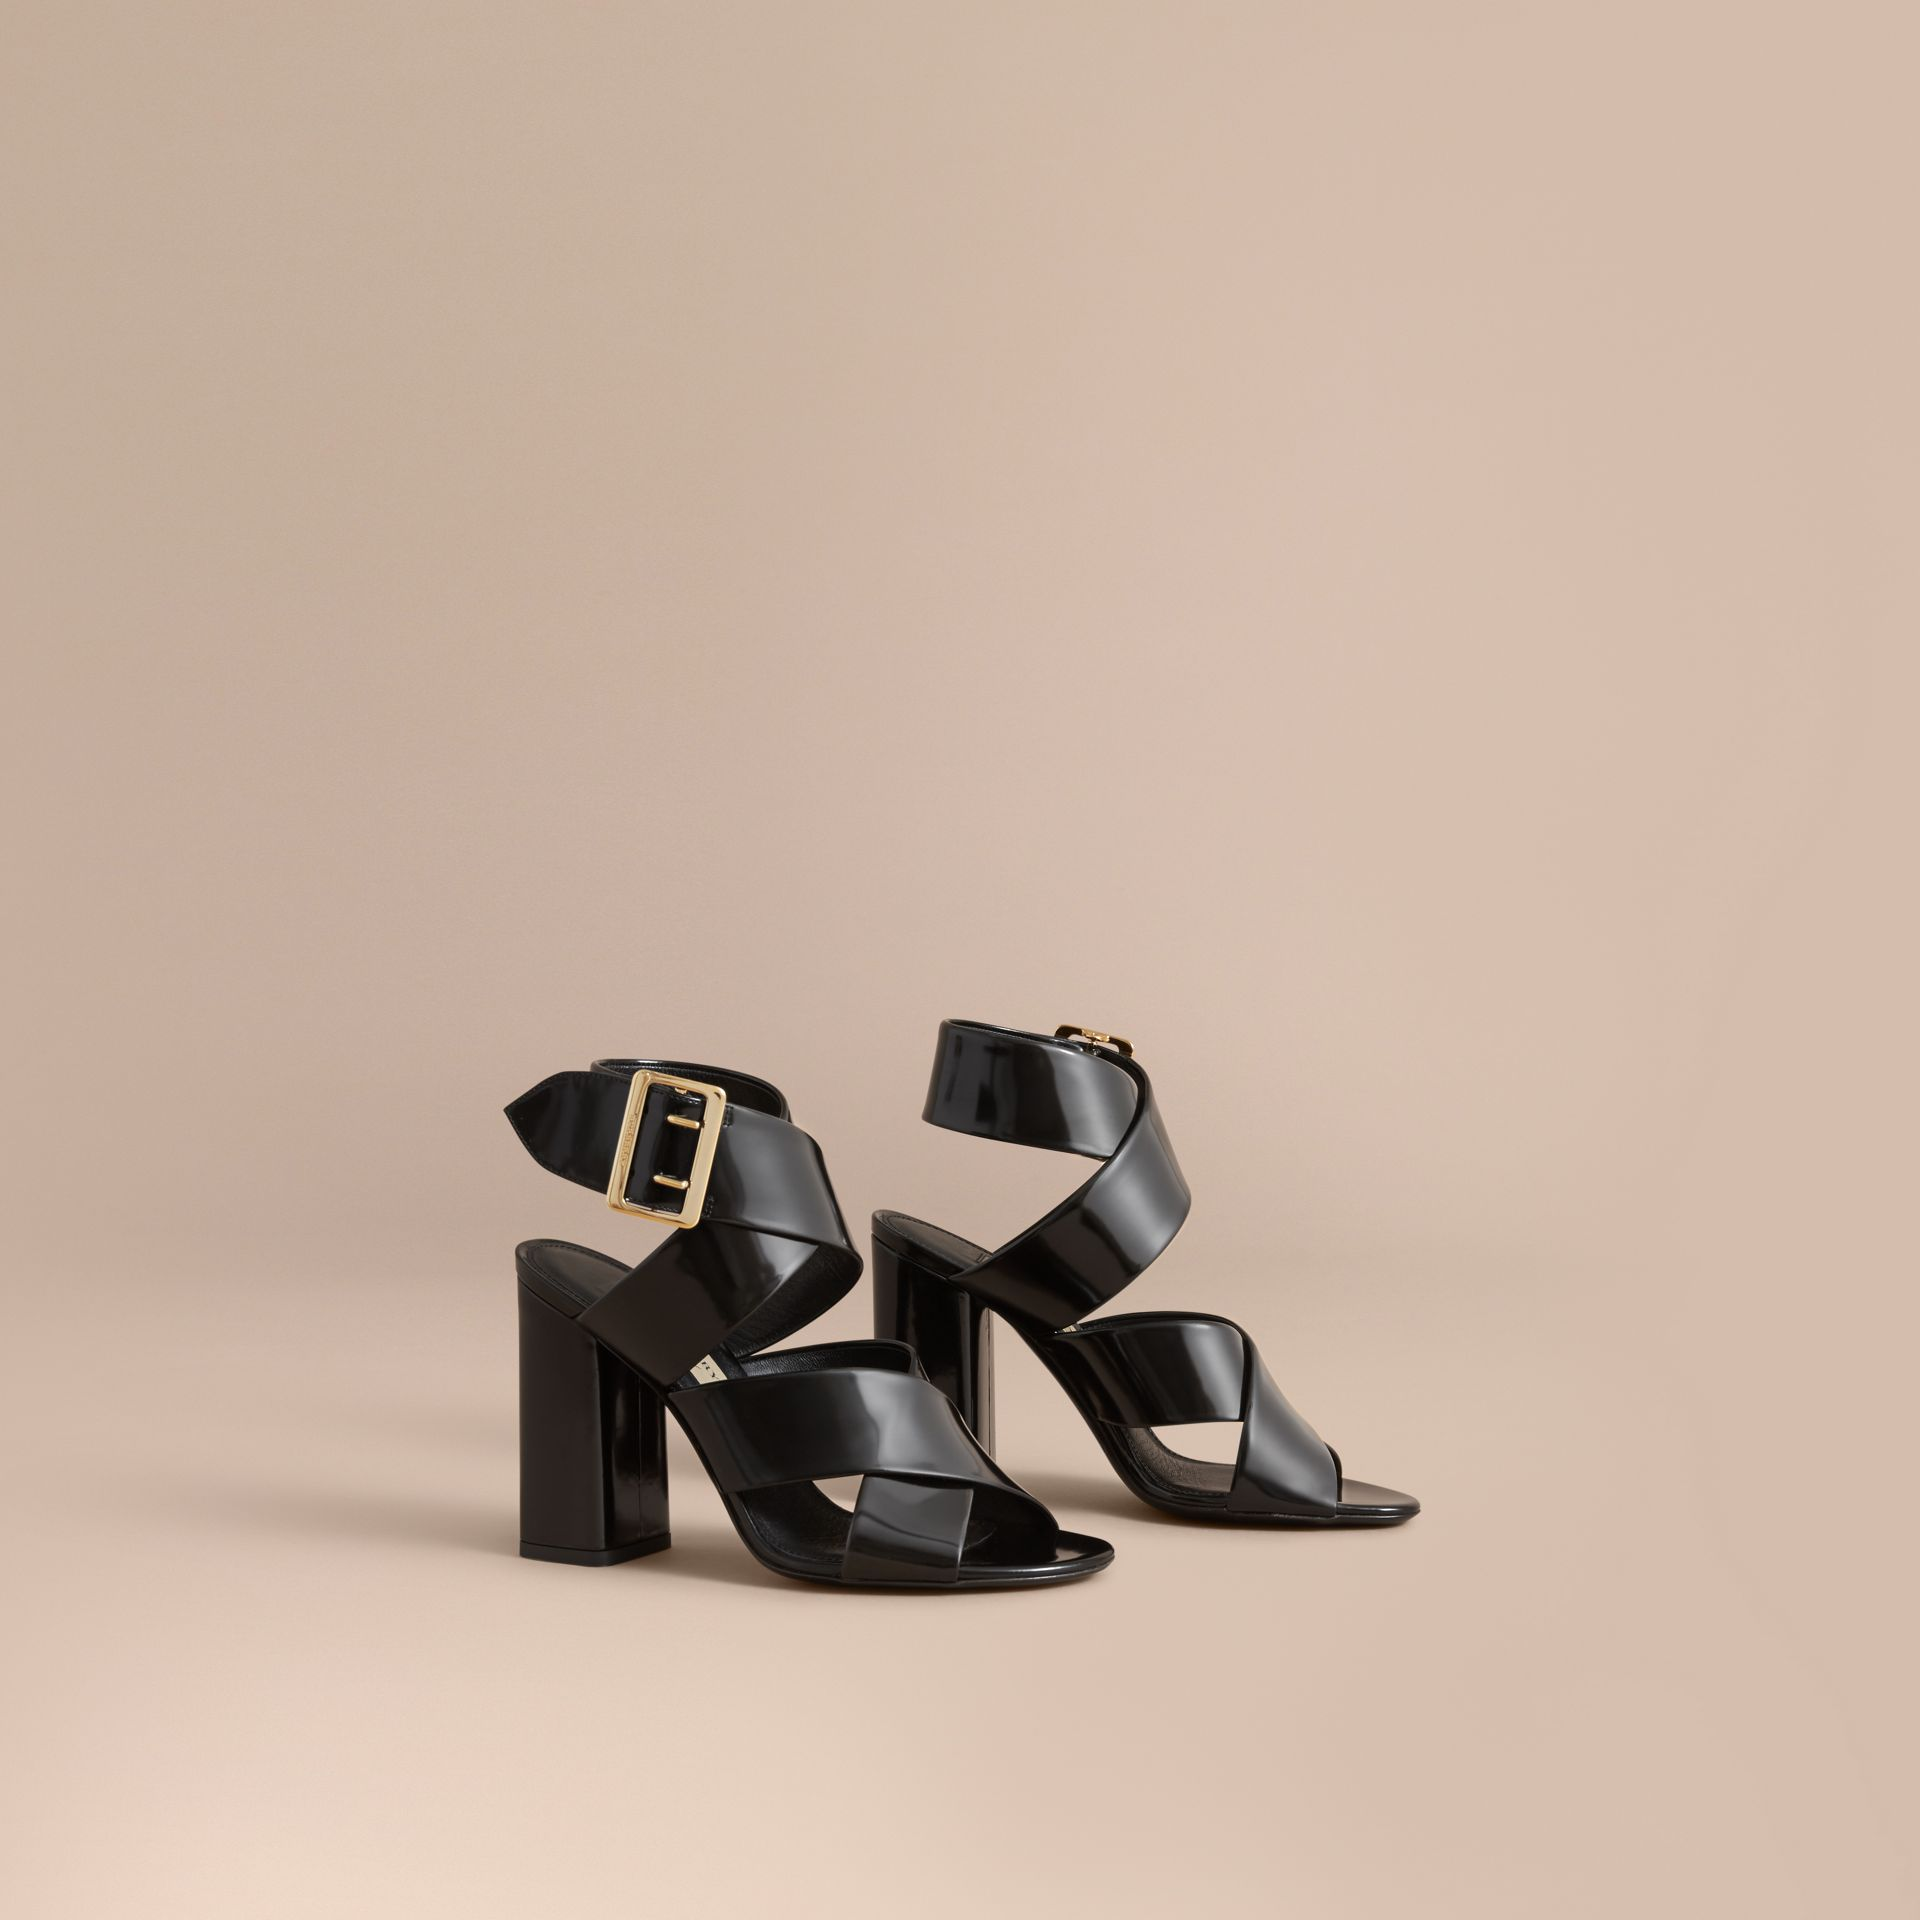 Buckle Detail Patent Leather Sandals in Black - Women | Burberry - gallery image 1